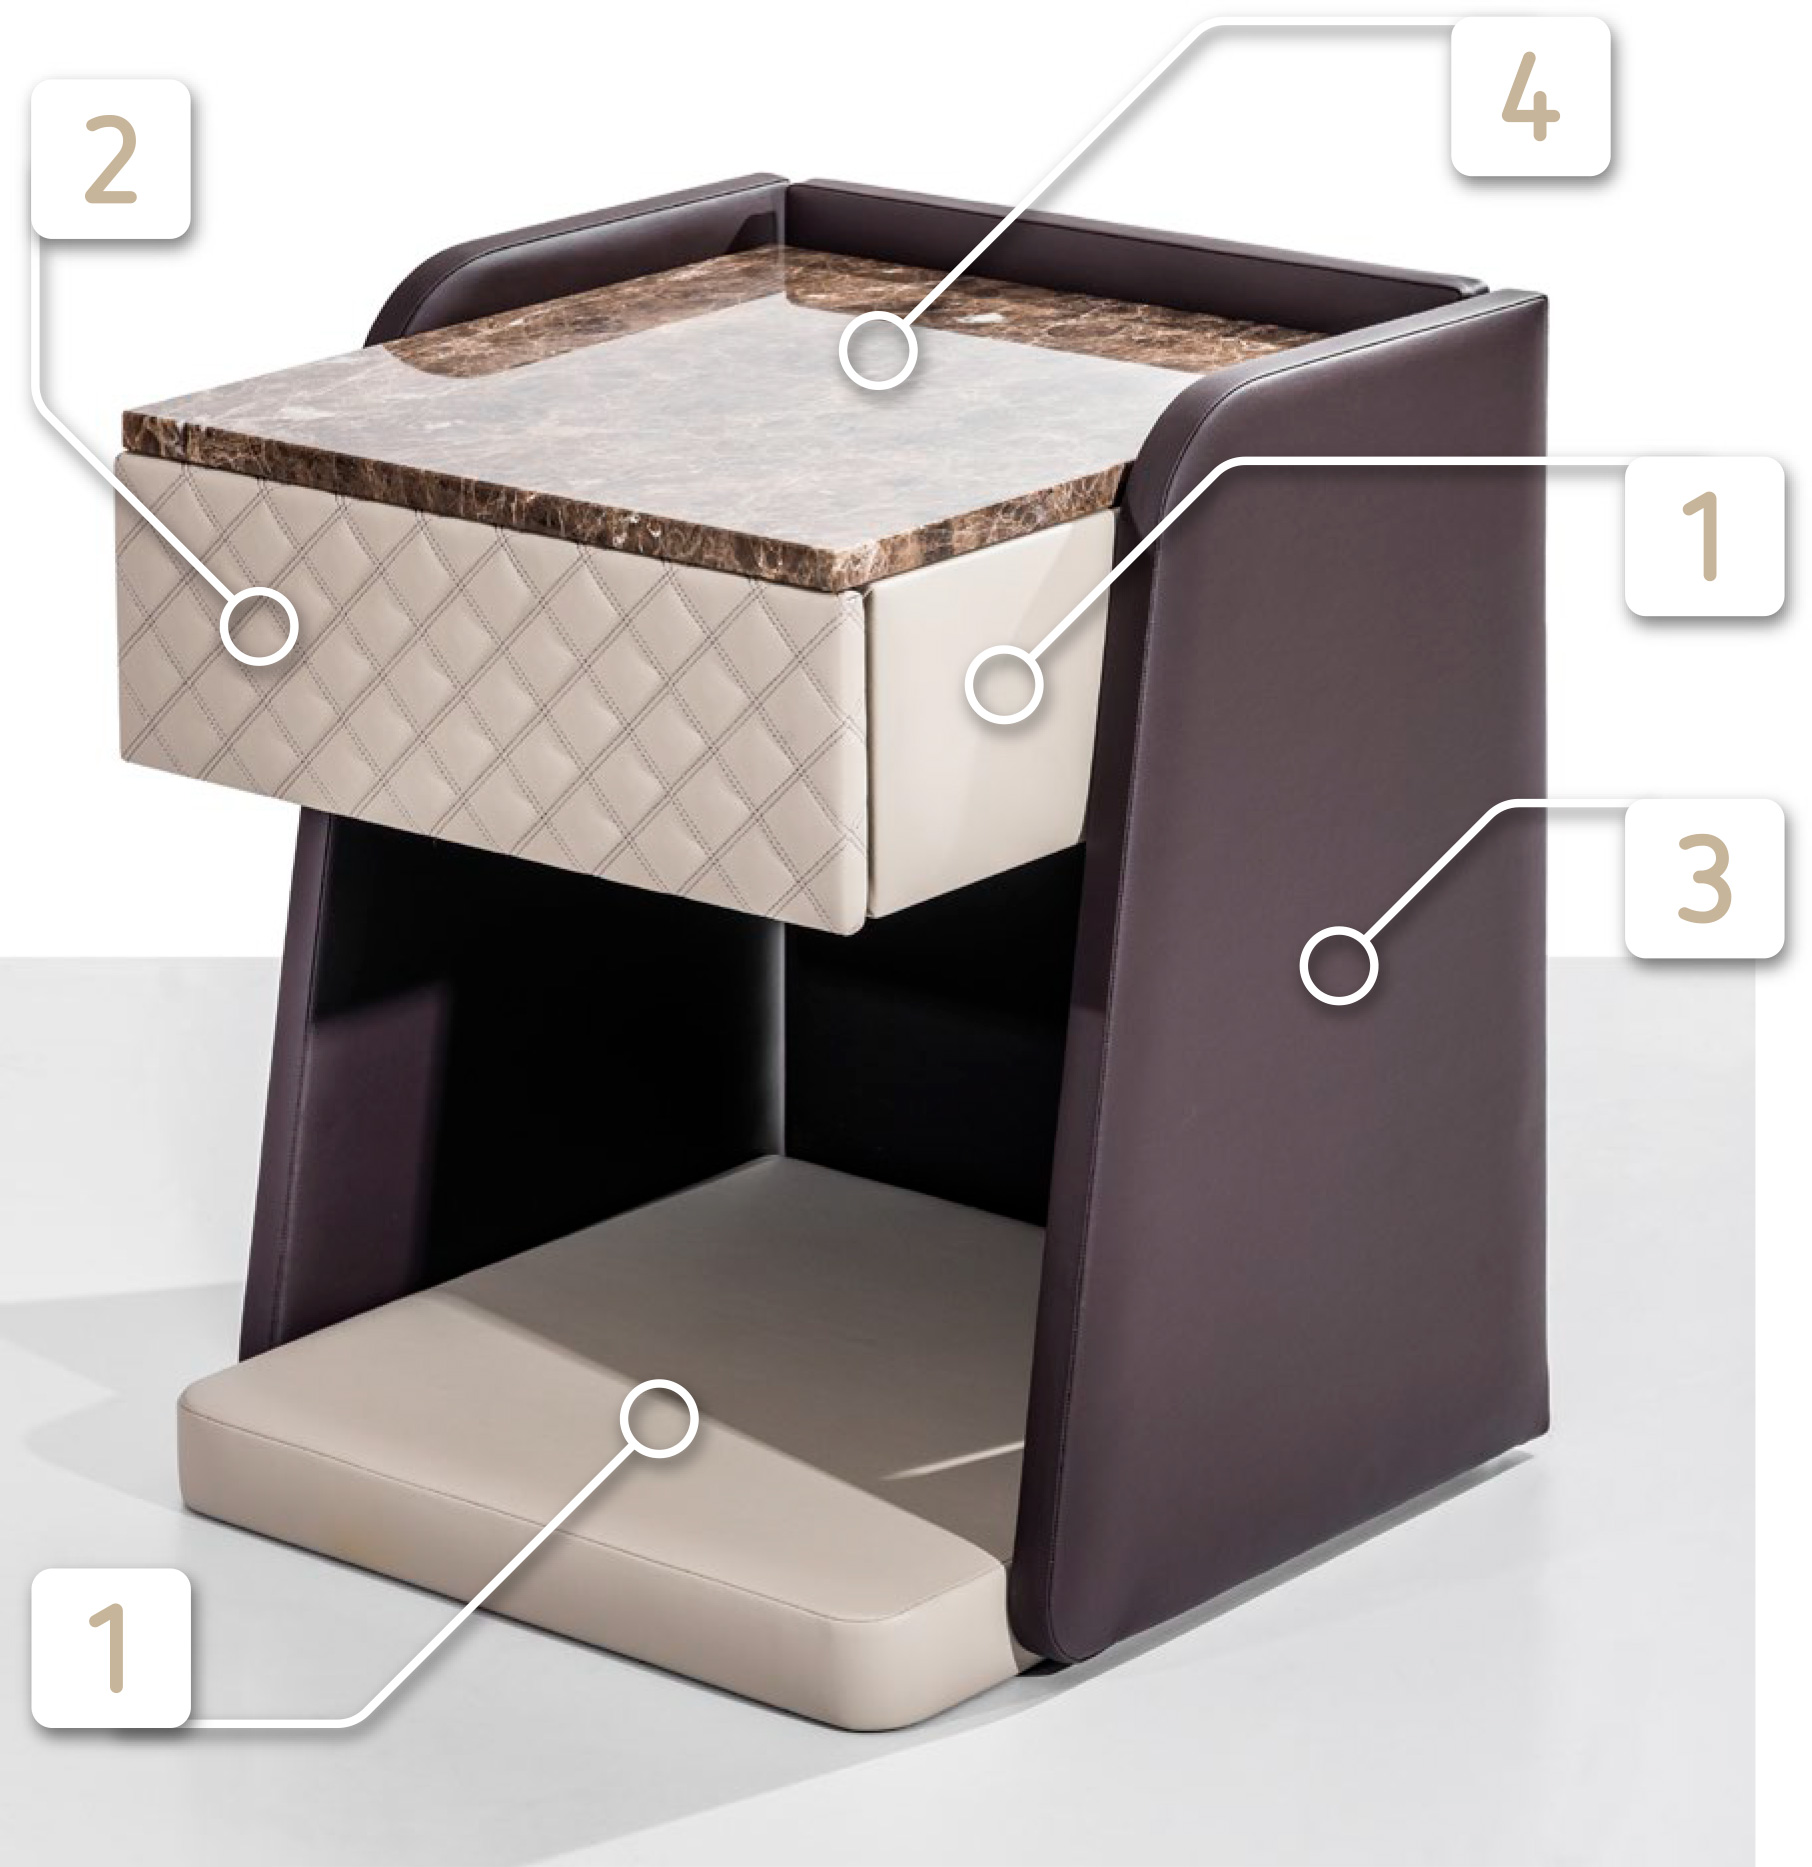 Cosmopolitan bedside table by Colunex